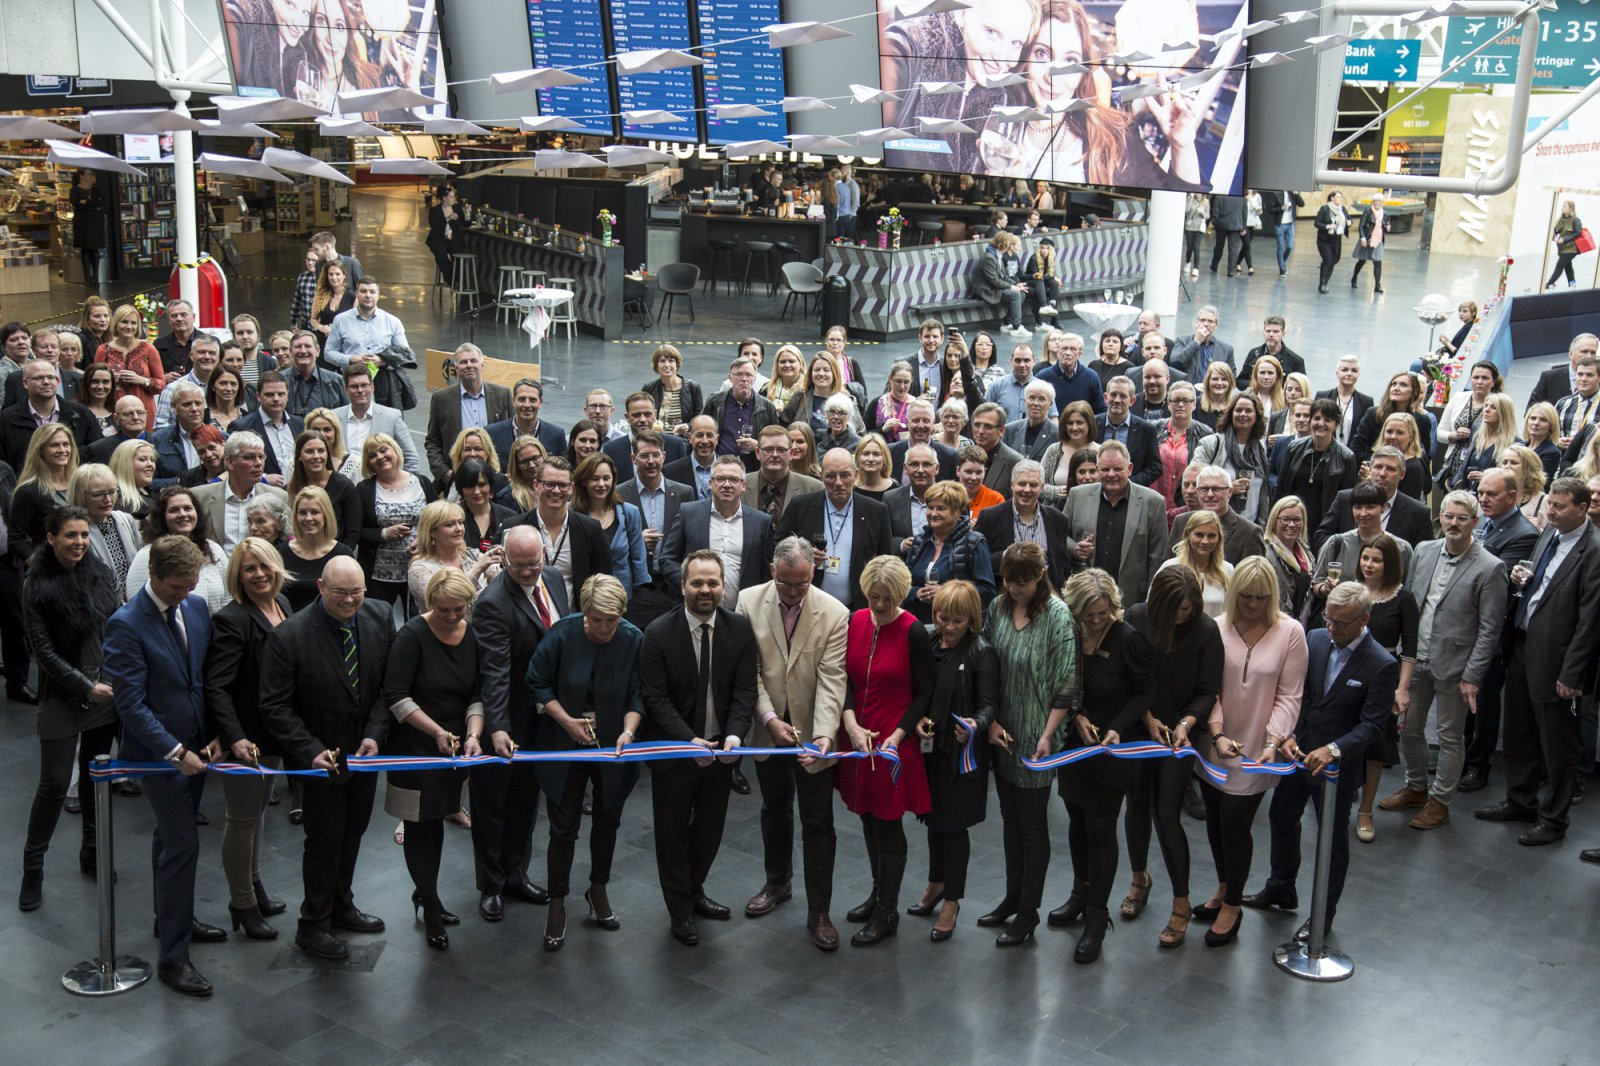 New commercial area opens at Keflavik airport